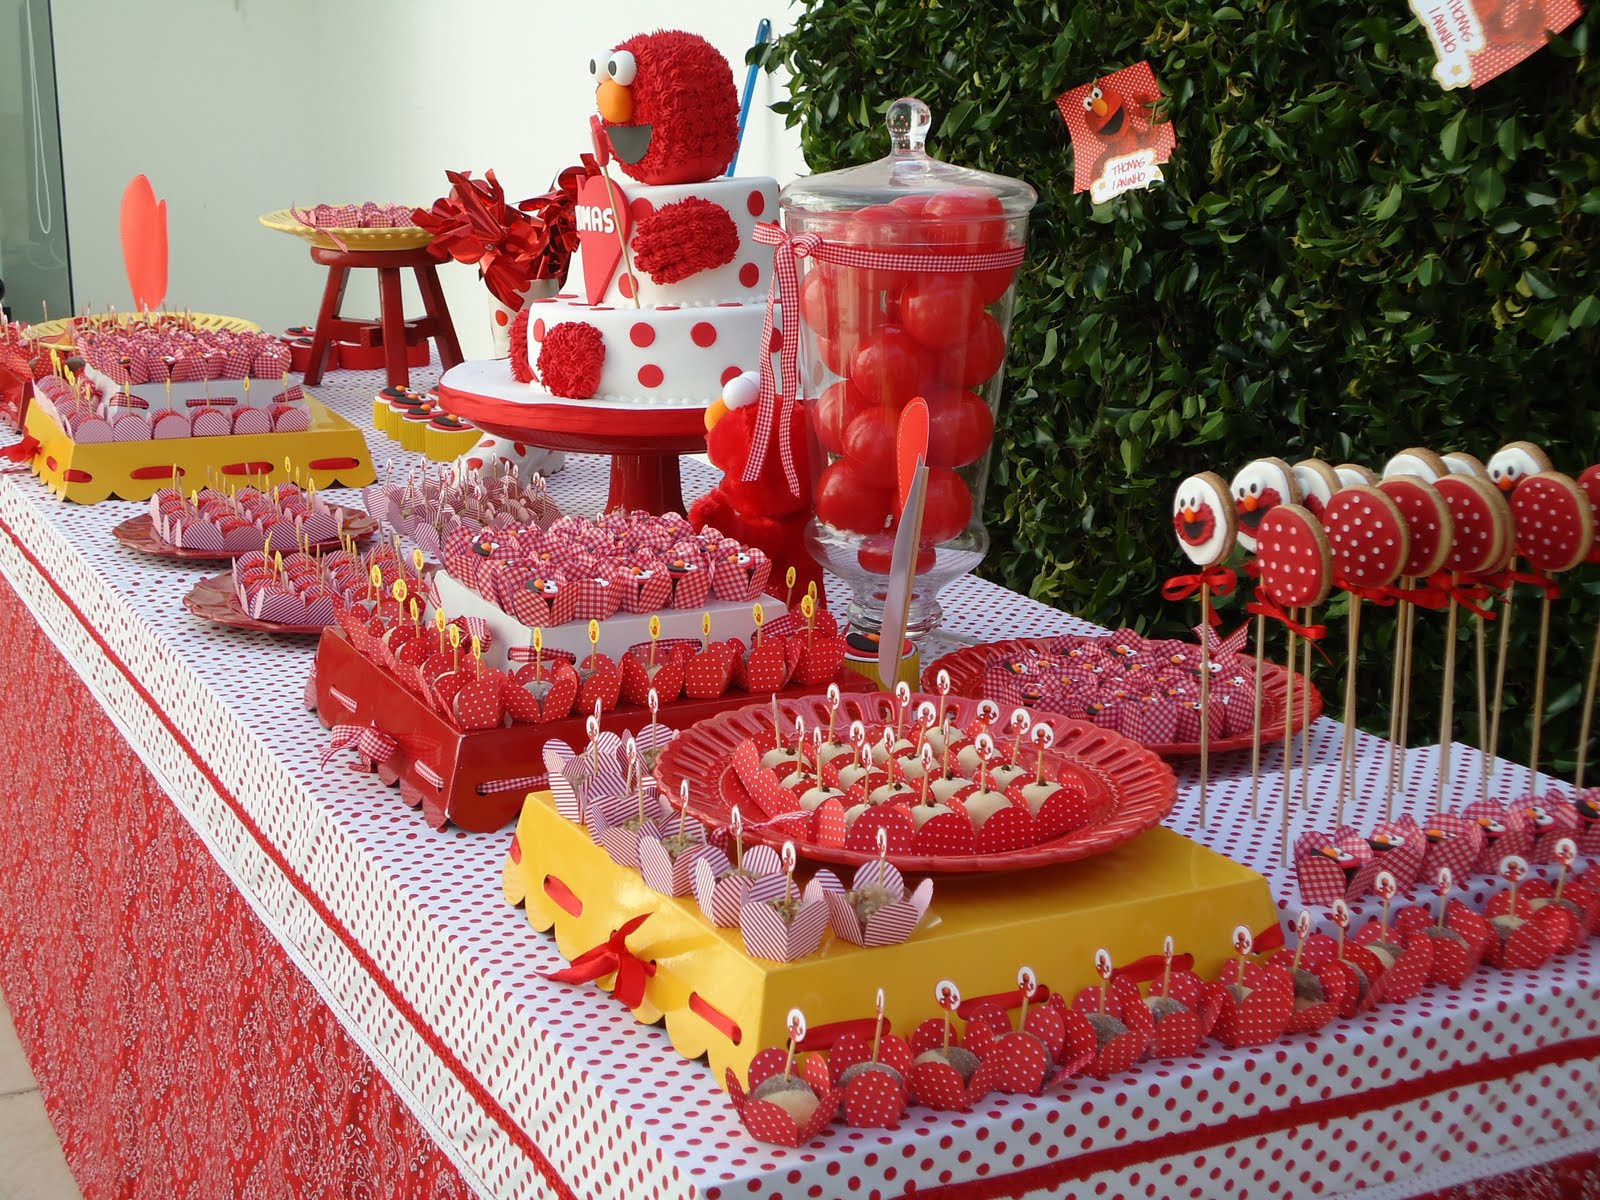 Best ideas about Kids Birthday Party Decorations . Save or Pin Kids Birthday Party Theme Decoration Ideas Now.